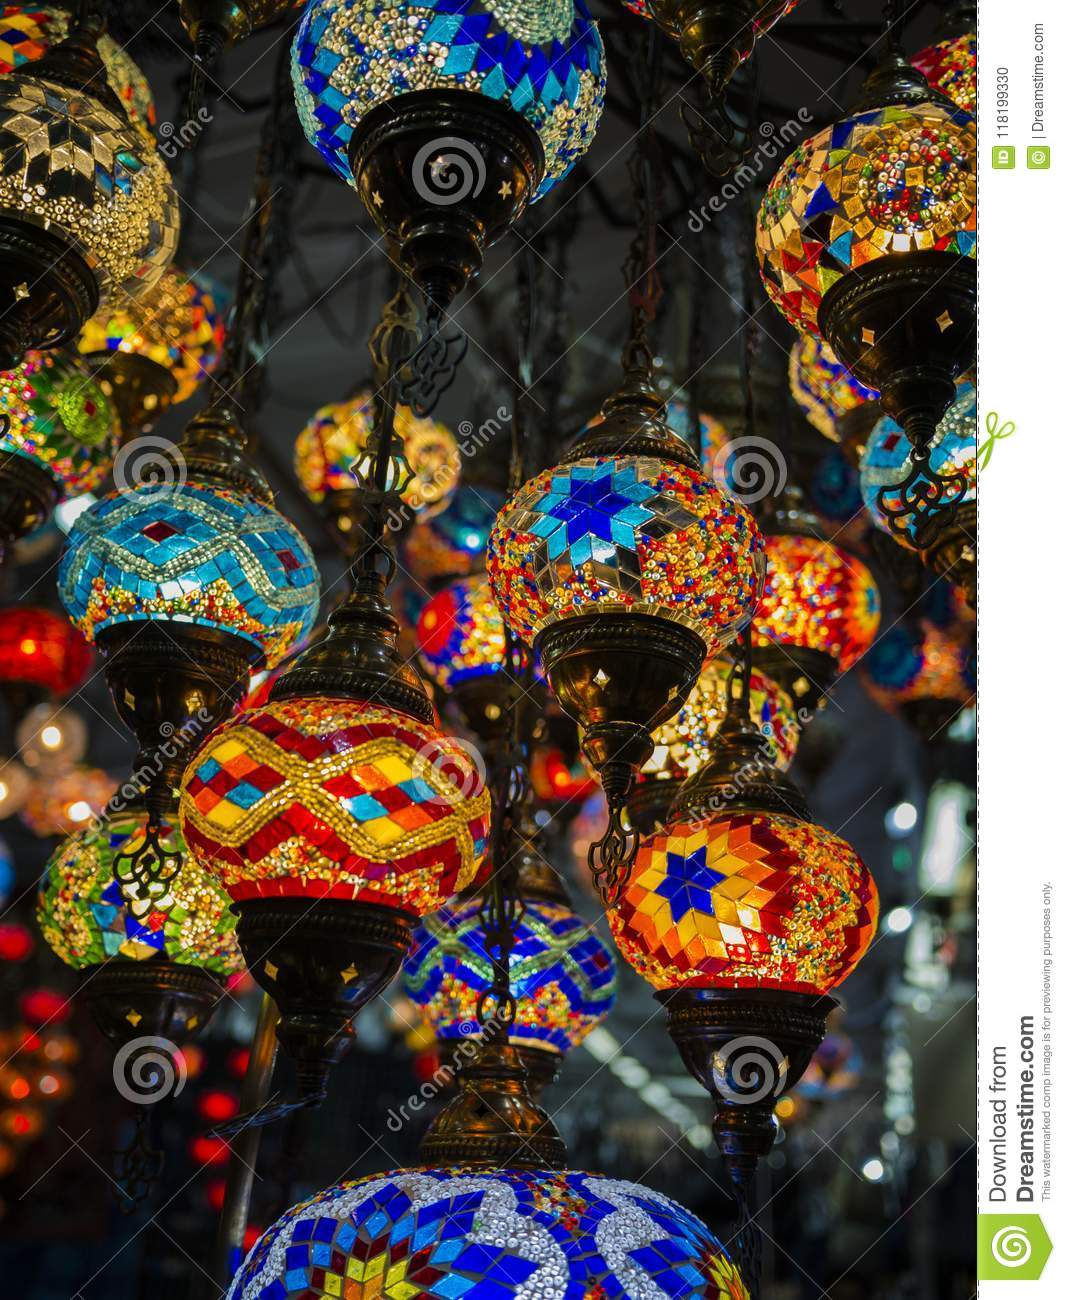 Amazing and elegant photo of ornate and colourful Turkish lights hanging from the ceiling.